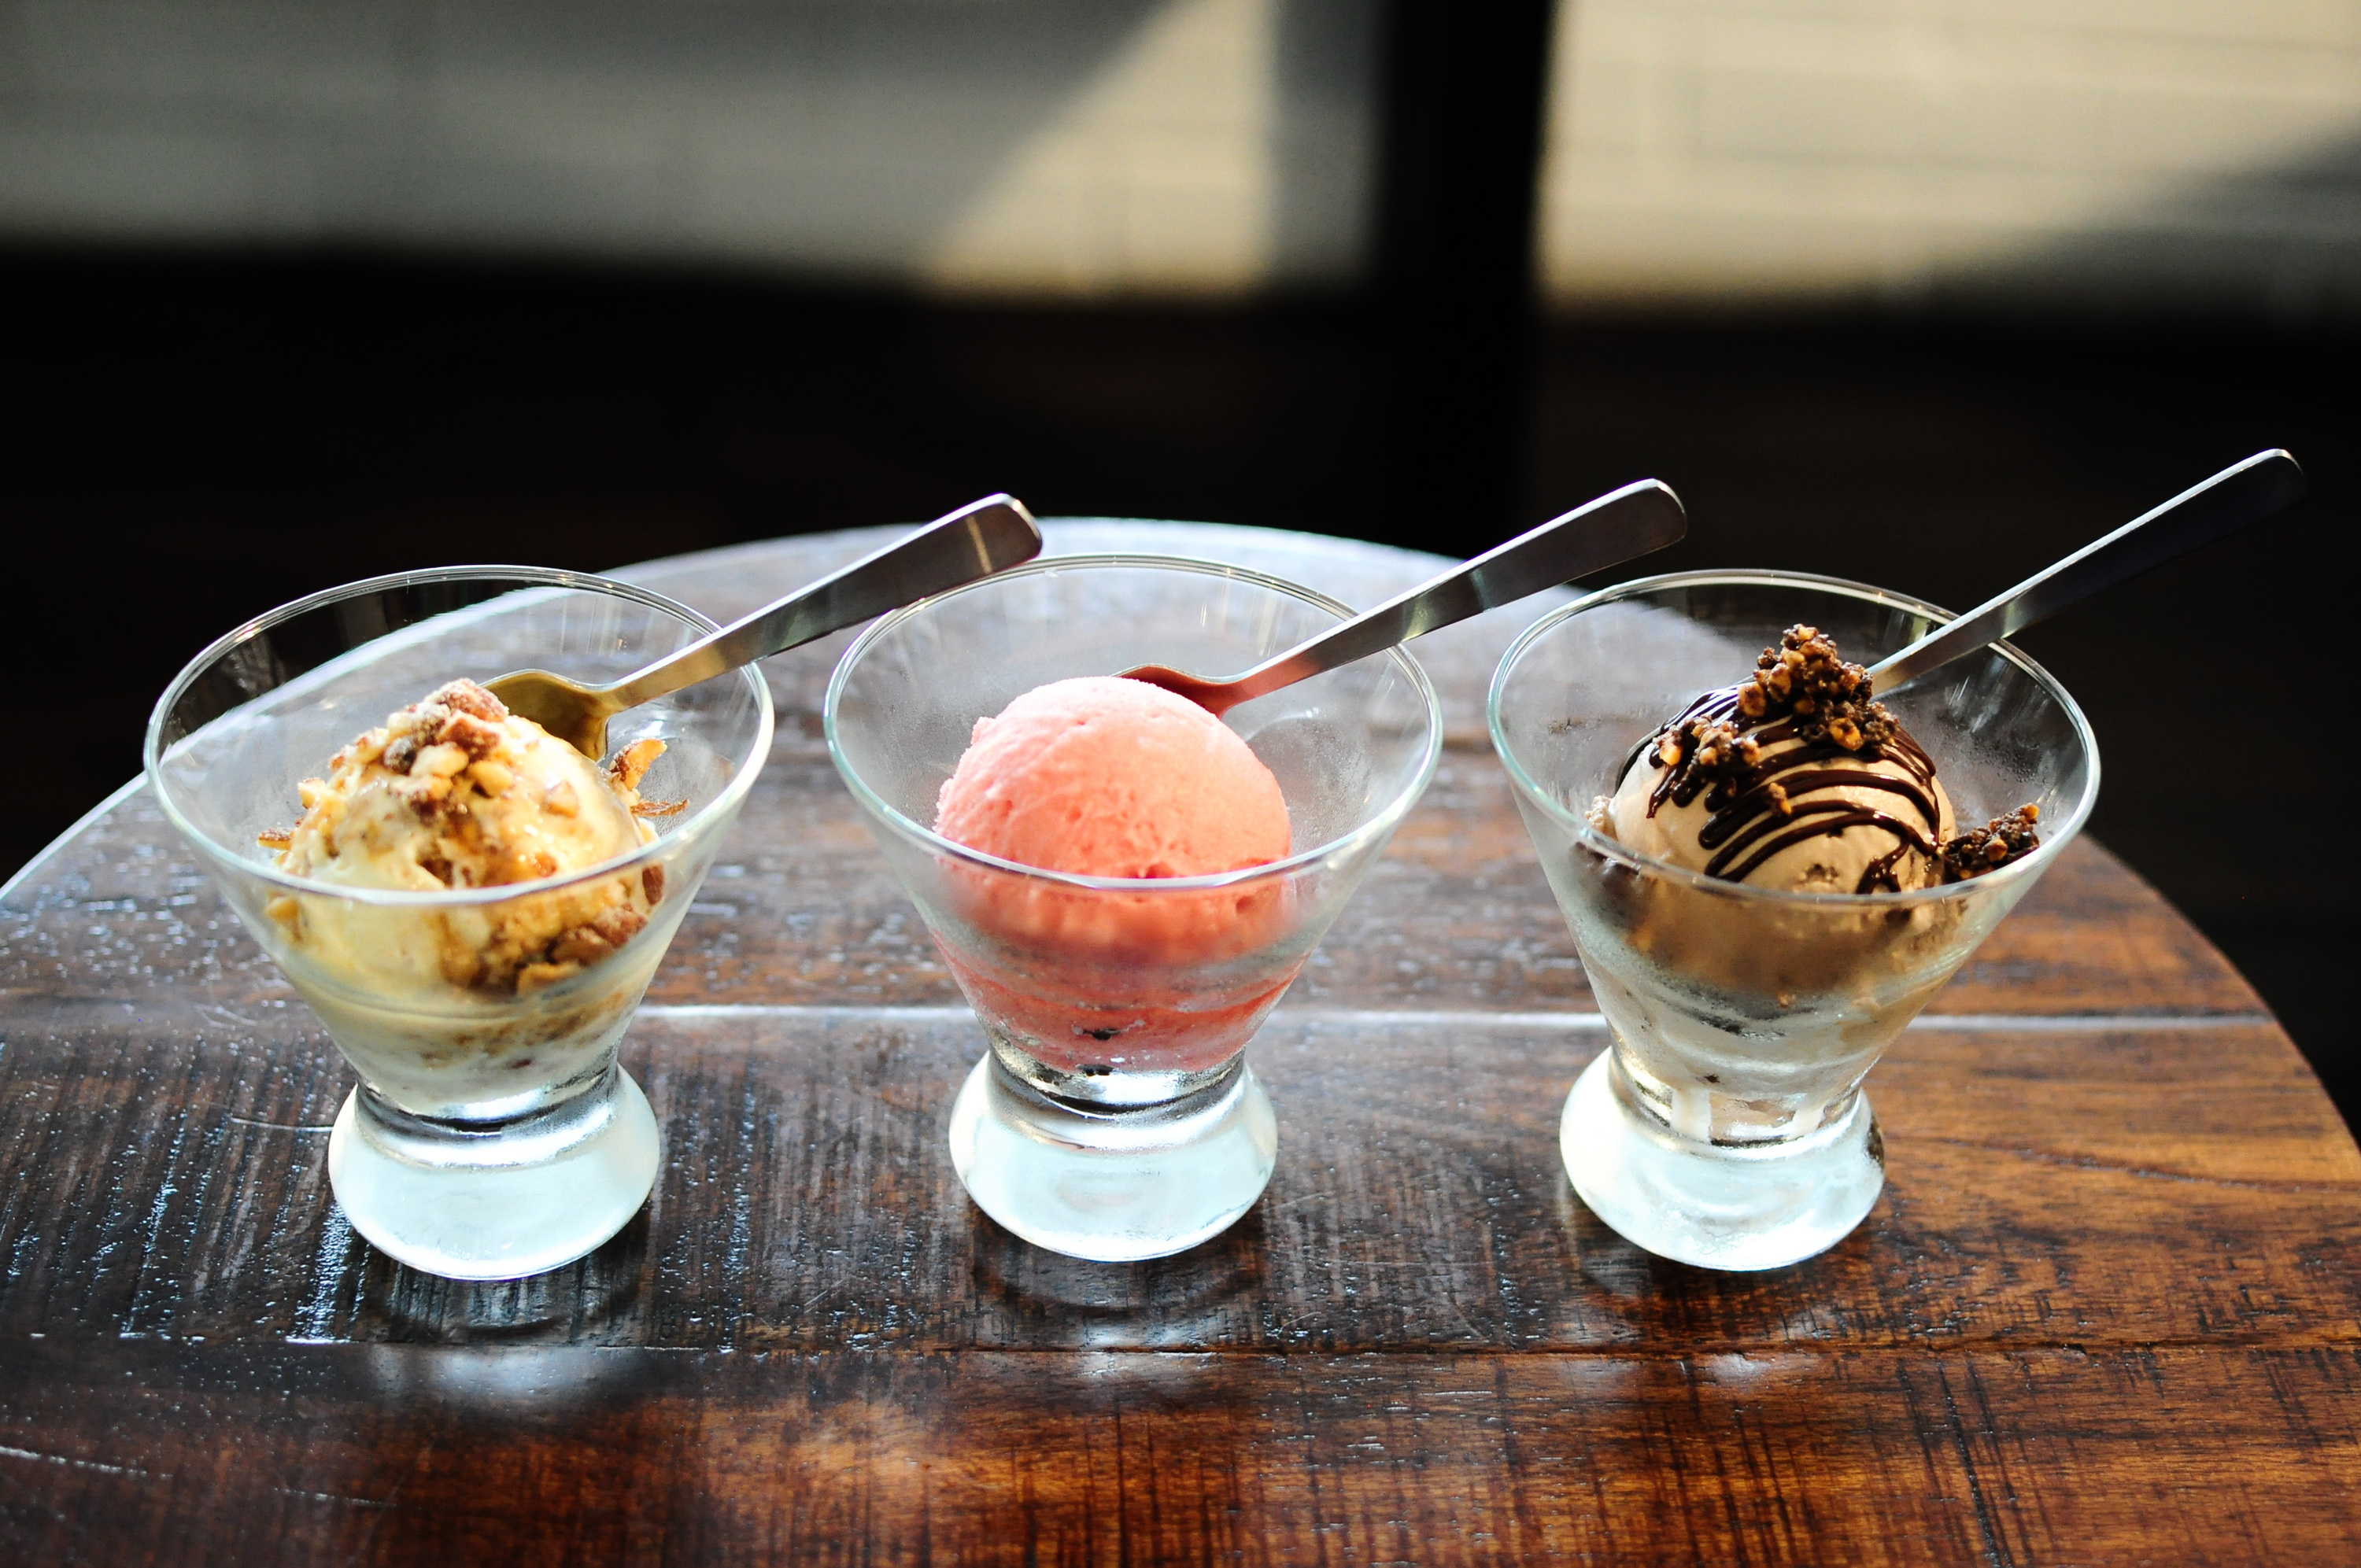 Alcoholic ice creams in KL